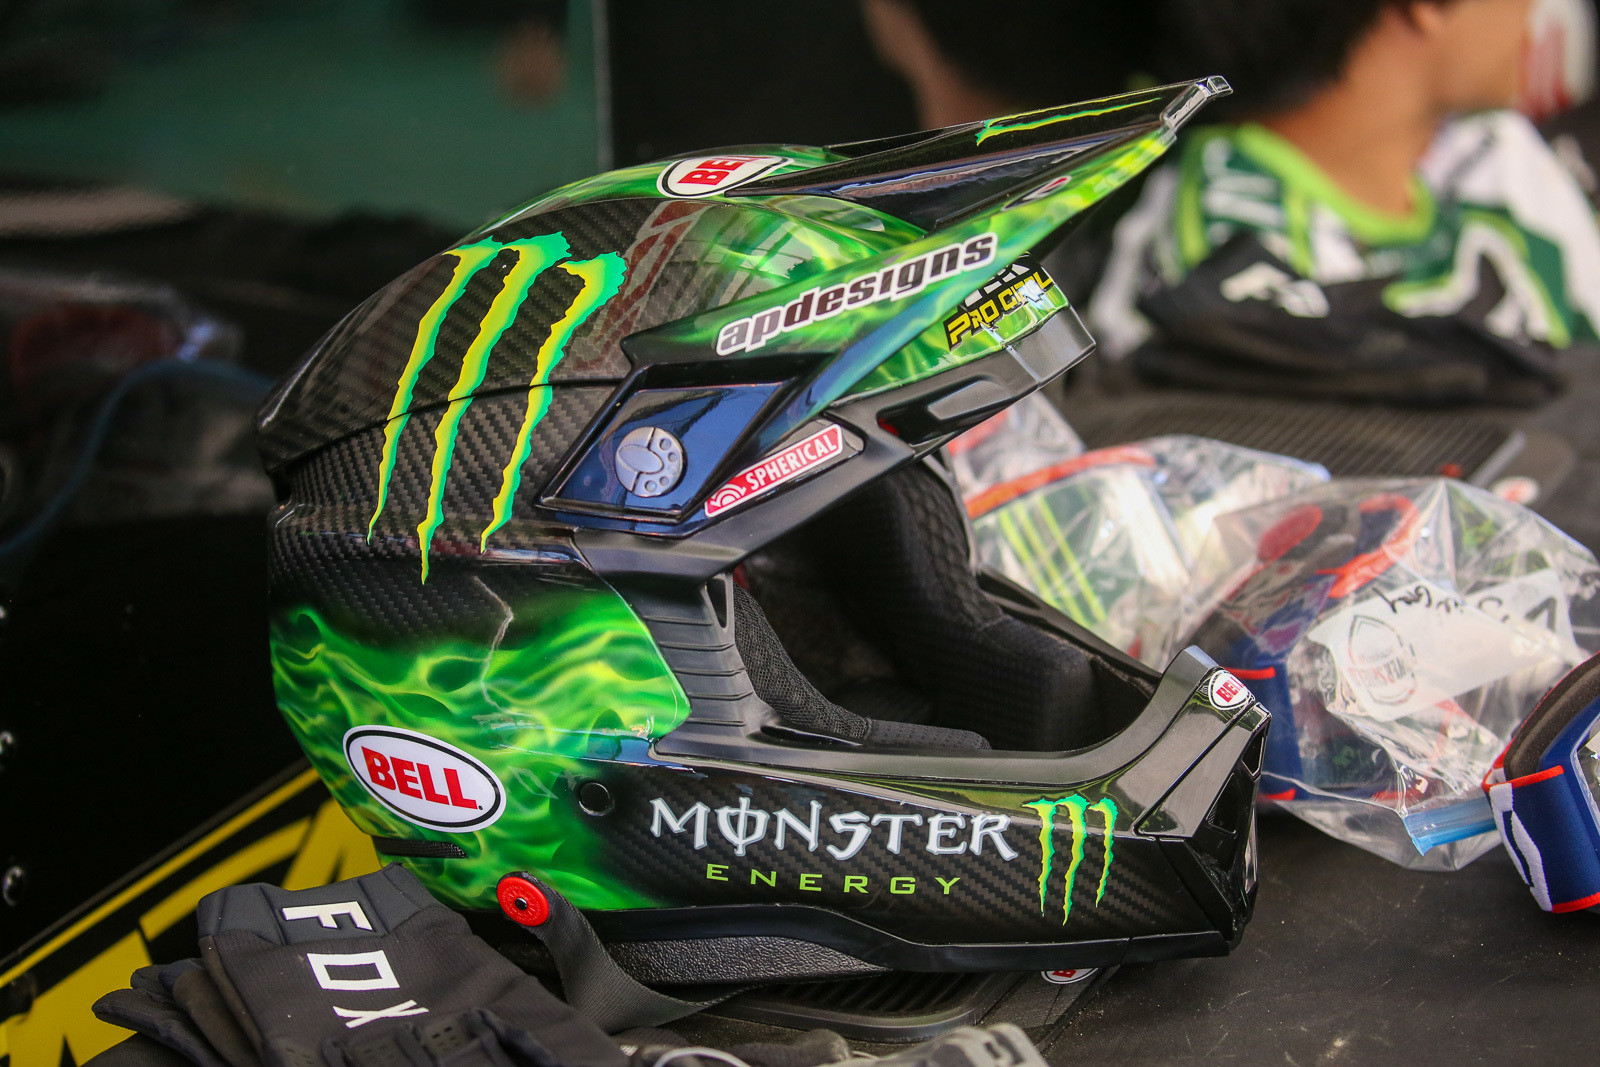 The green flames were a nice touch on the Monster Energy Pro Circuit Kawasaki Bell Helmets.